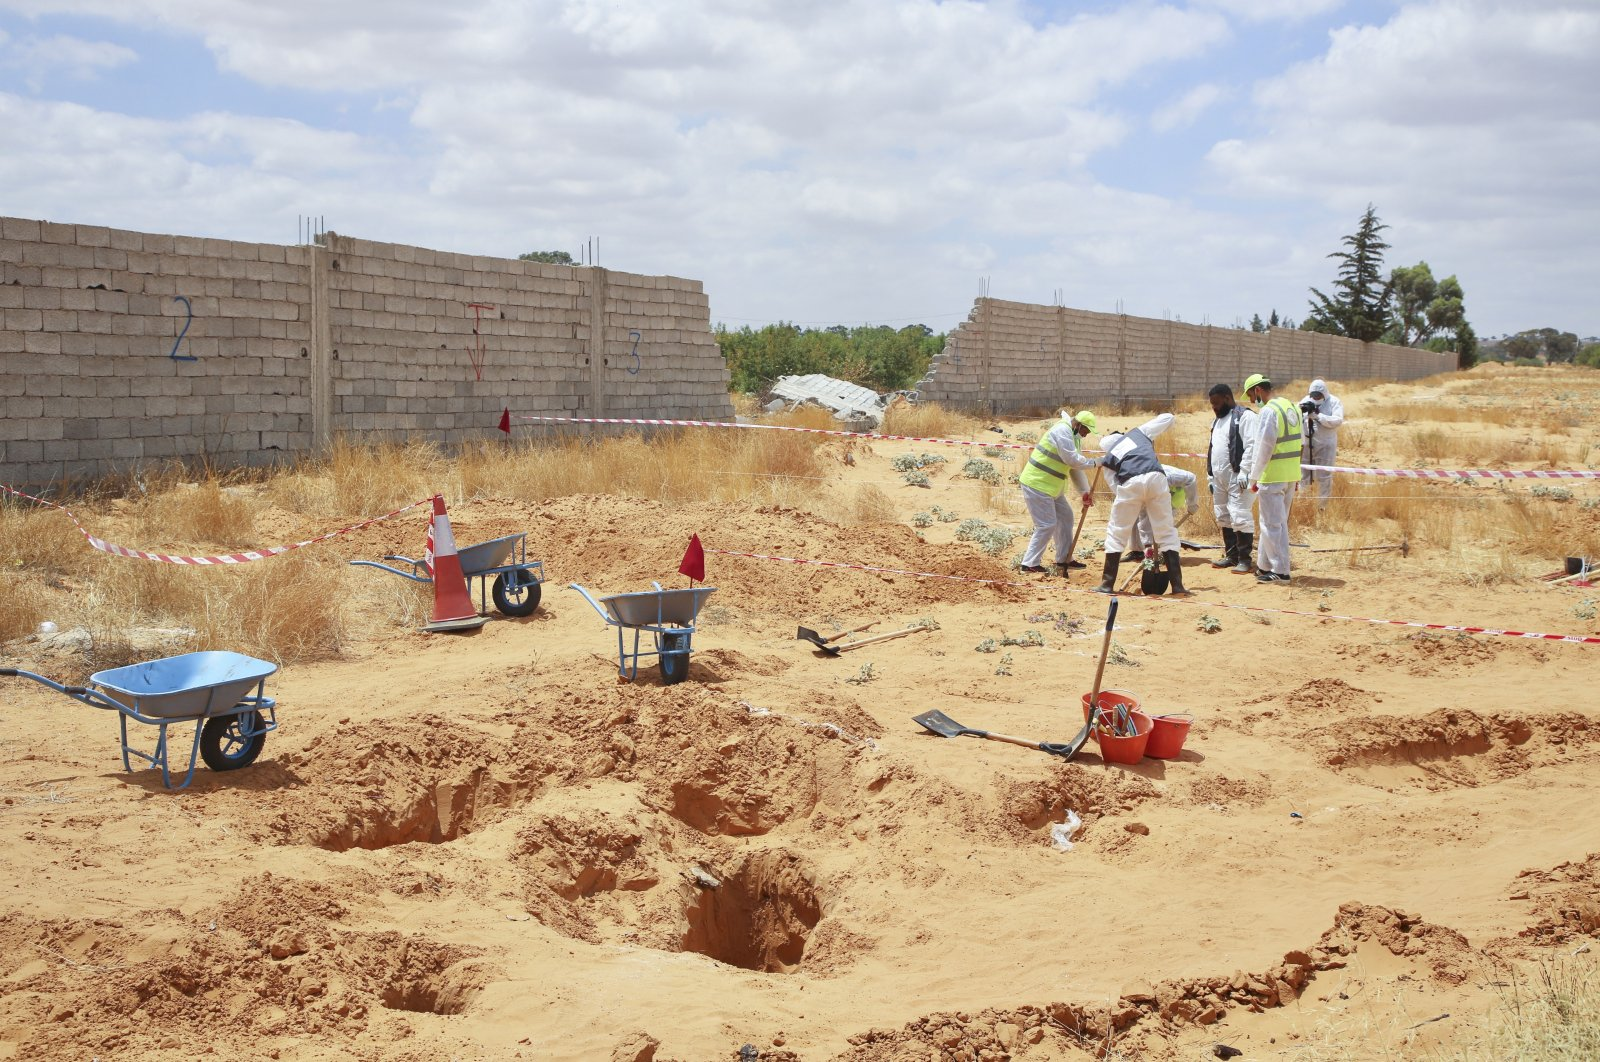 Employees of the Libyan justice ministry dig out at a site of a suspected mass grave in the town of Tarhuna, Libya, June 23, 2020. (AP Photo)